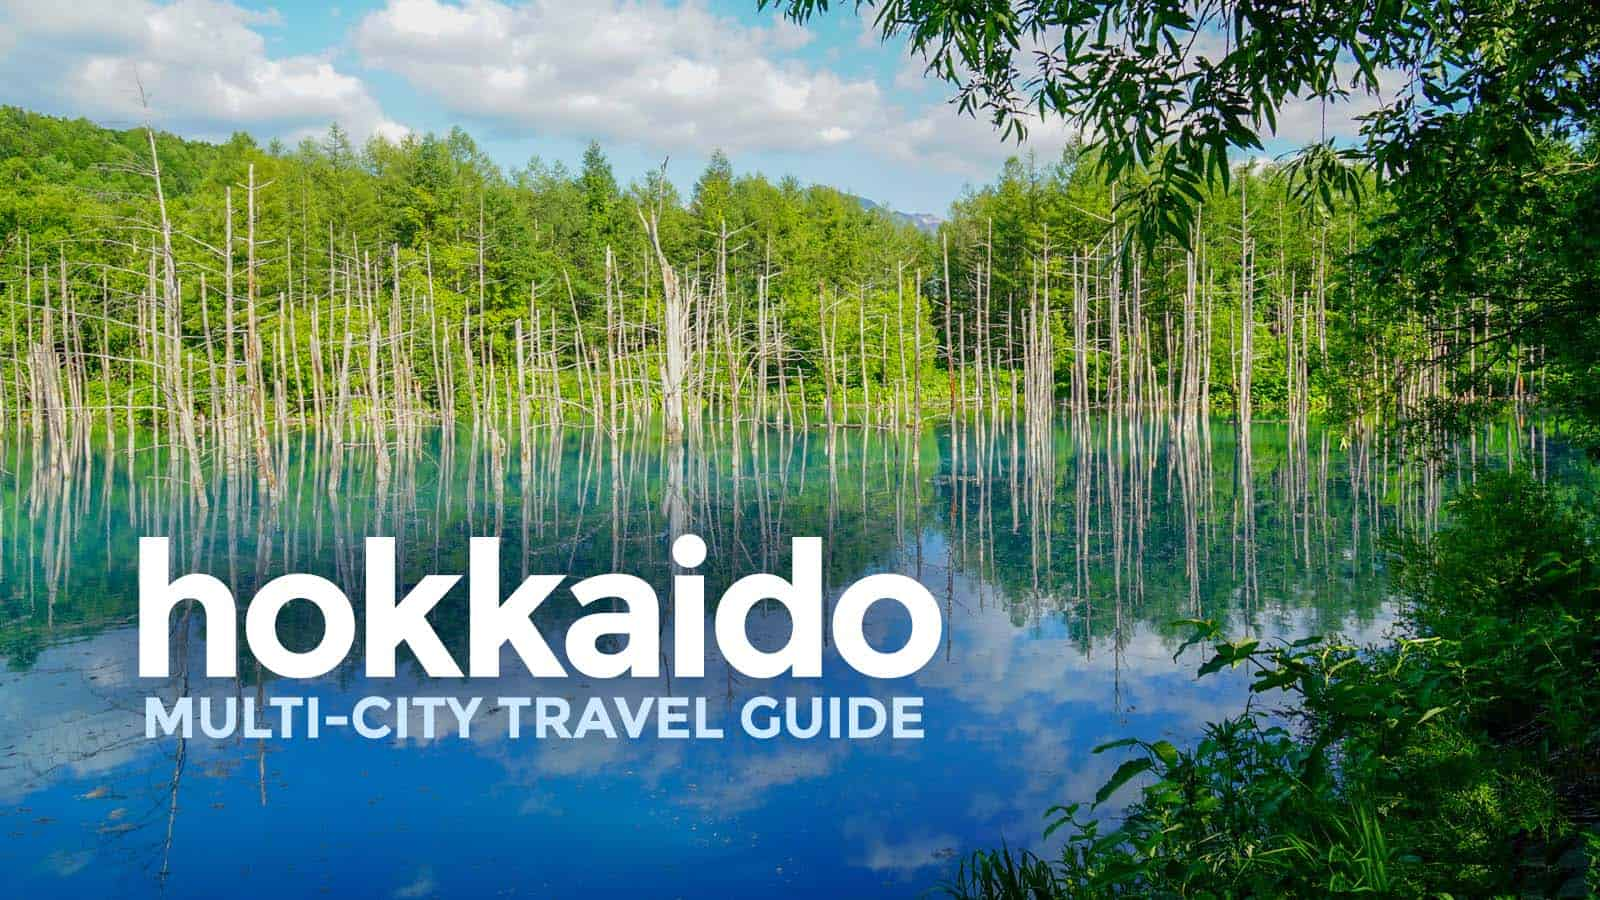 HOKKAIDO MULTI-CITY TOUR: Budget Travel Guide & Itineraries 2018